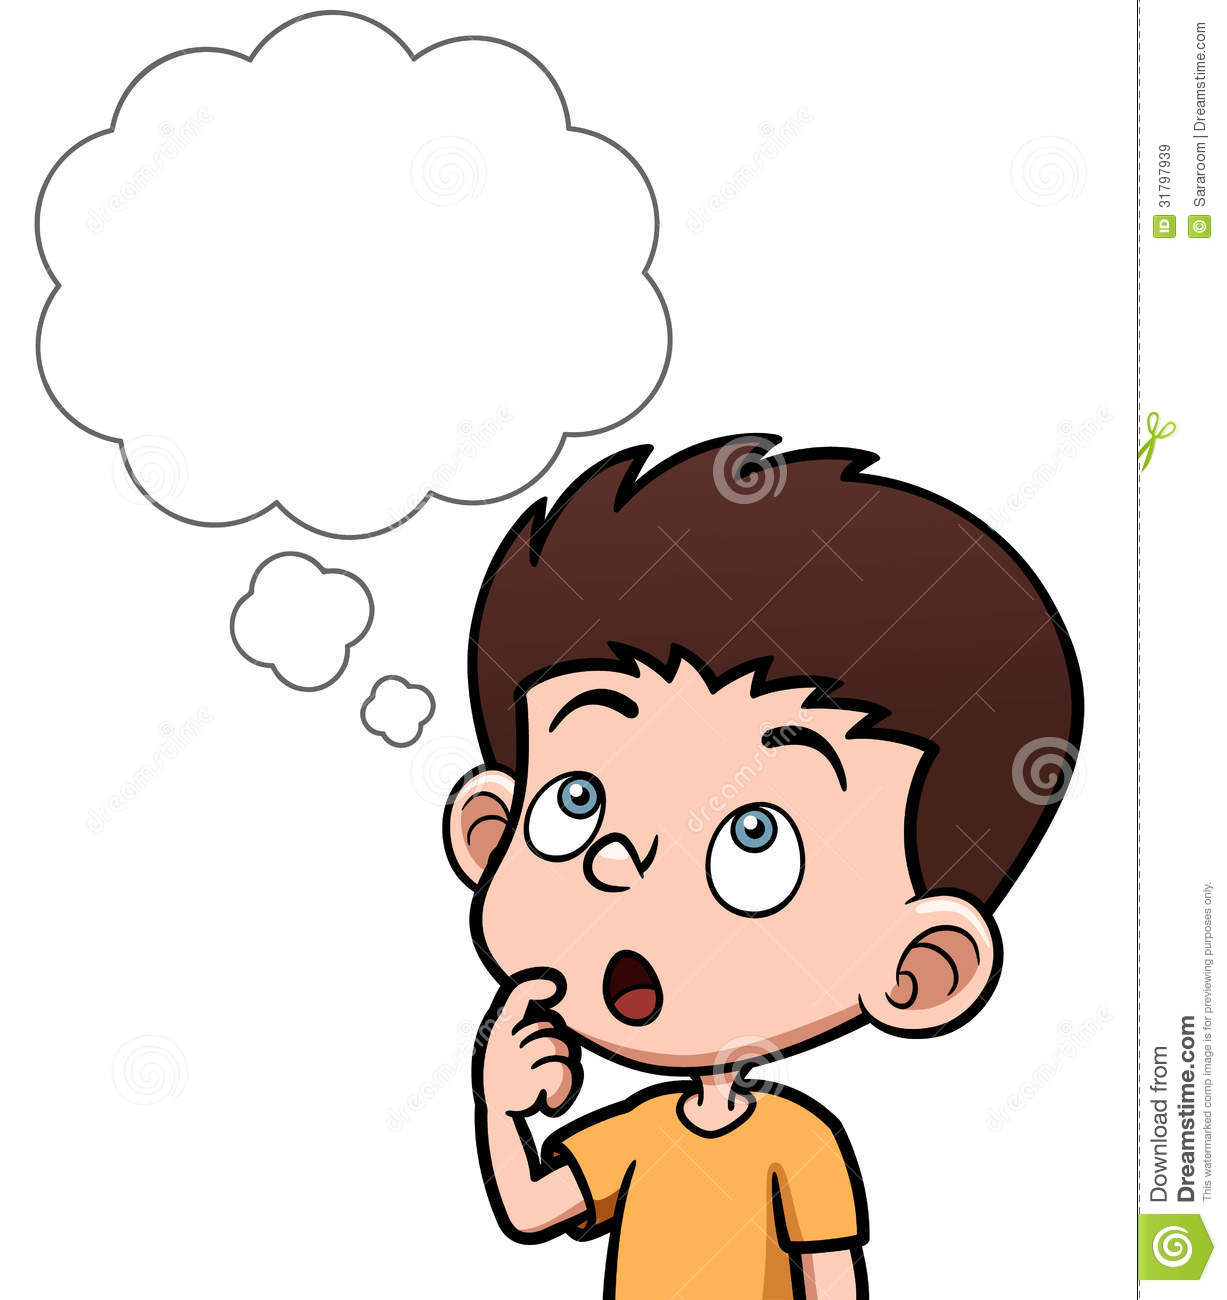 Cartoon Child Thinking Stock Illustrations 3 525 Cartoon Child Thinking Stock Illustrations Vectors Clipart Dreamstime